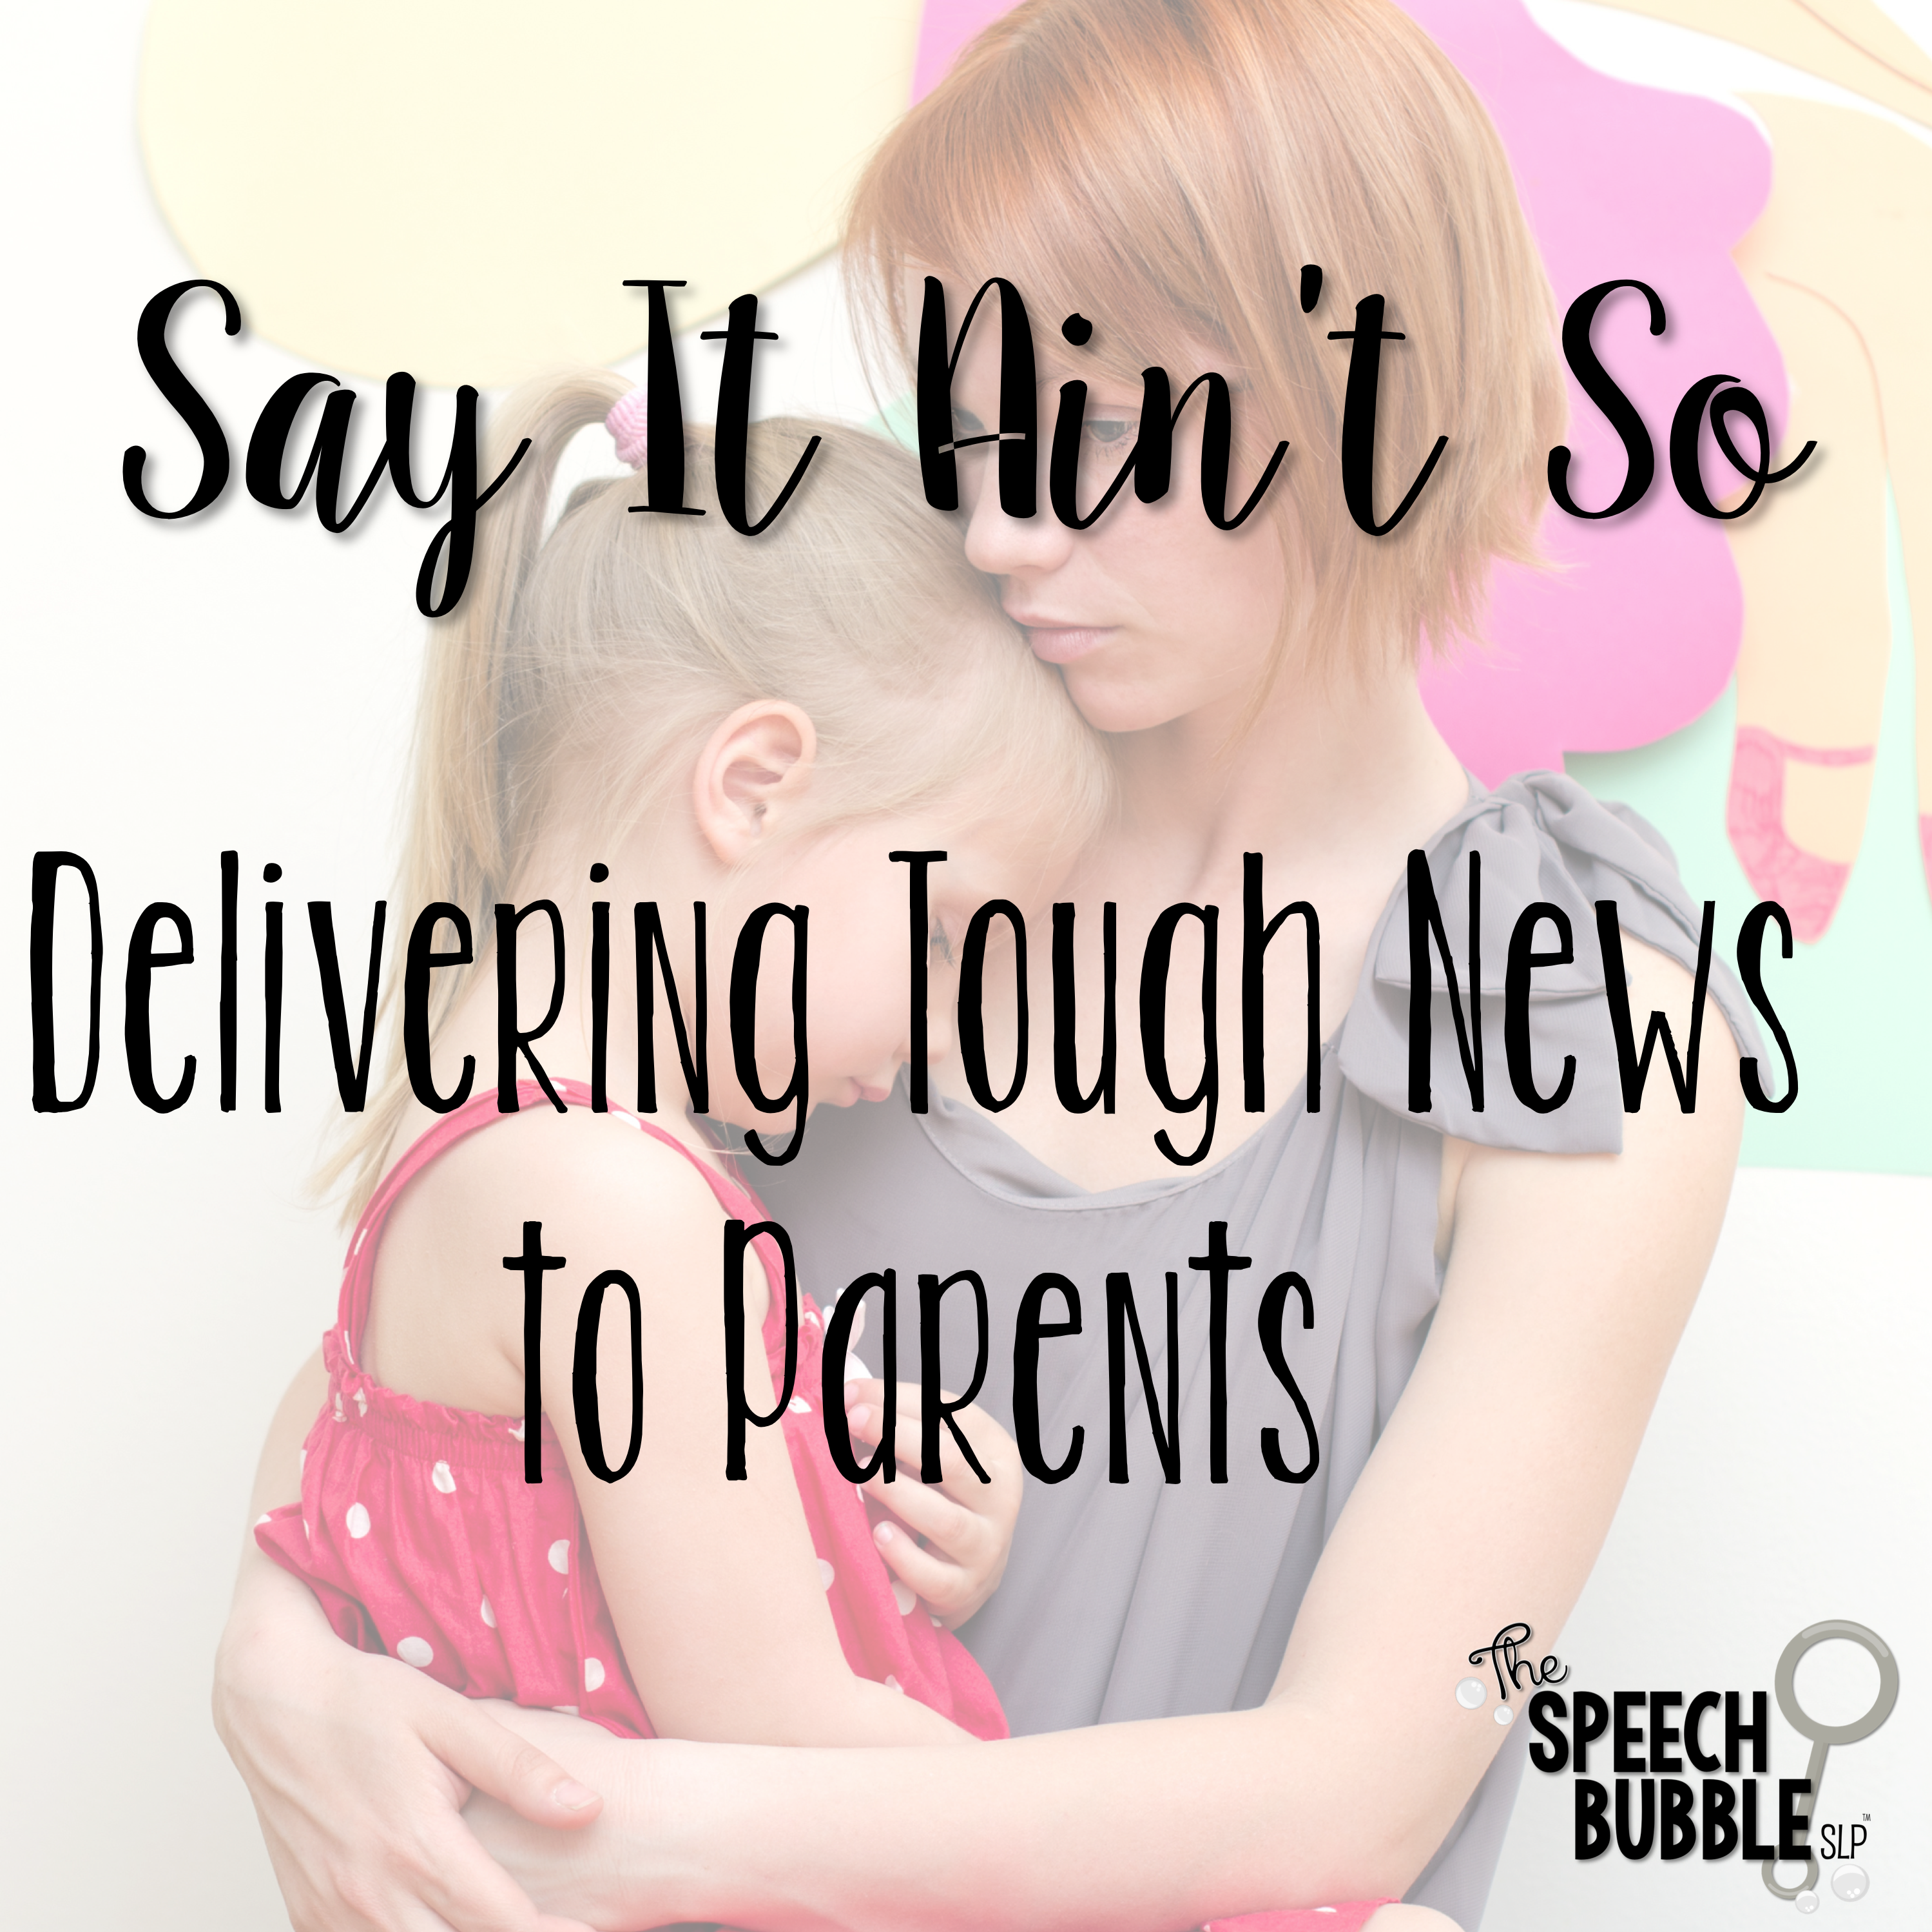 Say it Ain't So: Delivering Tough News to Parents